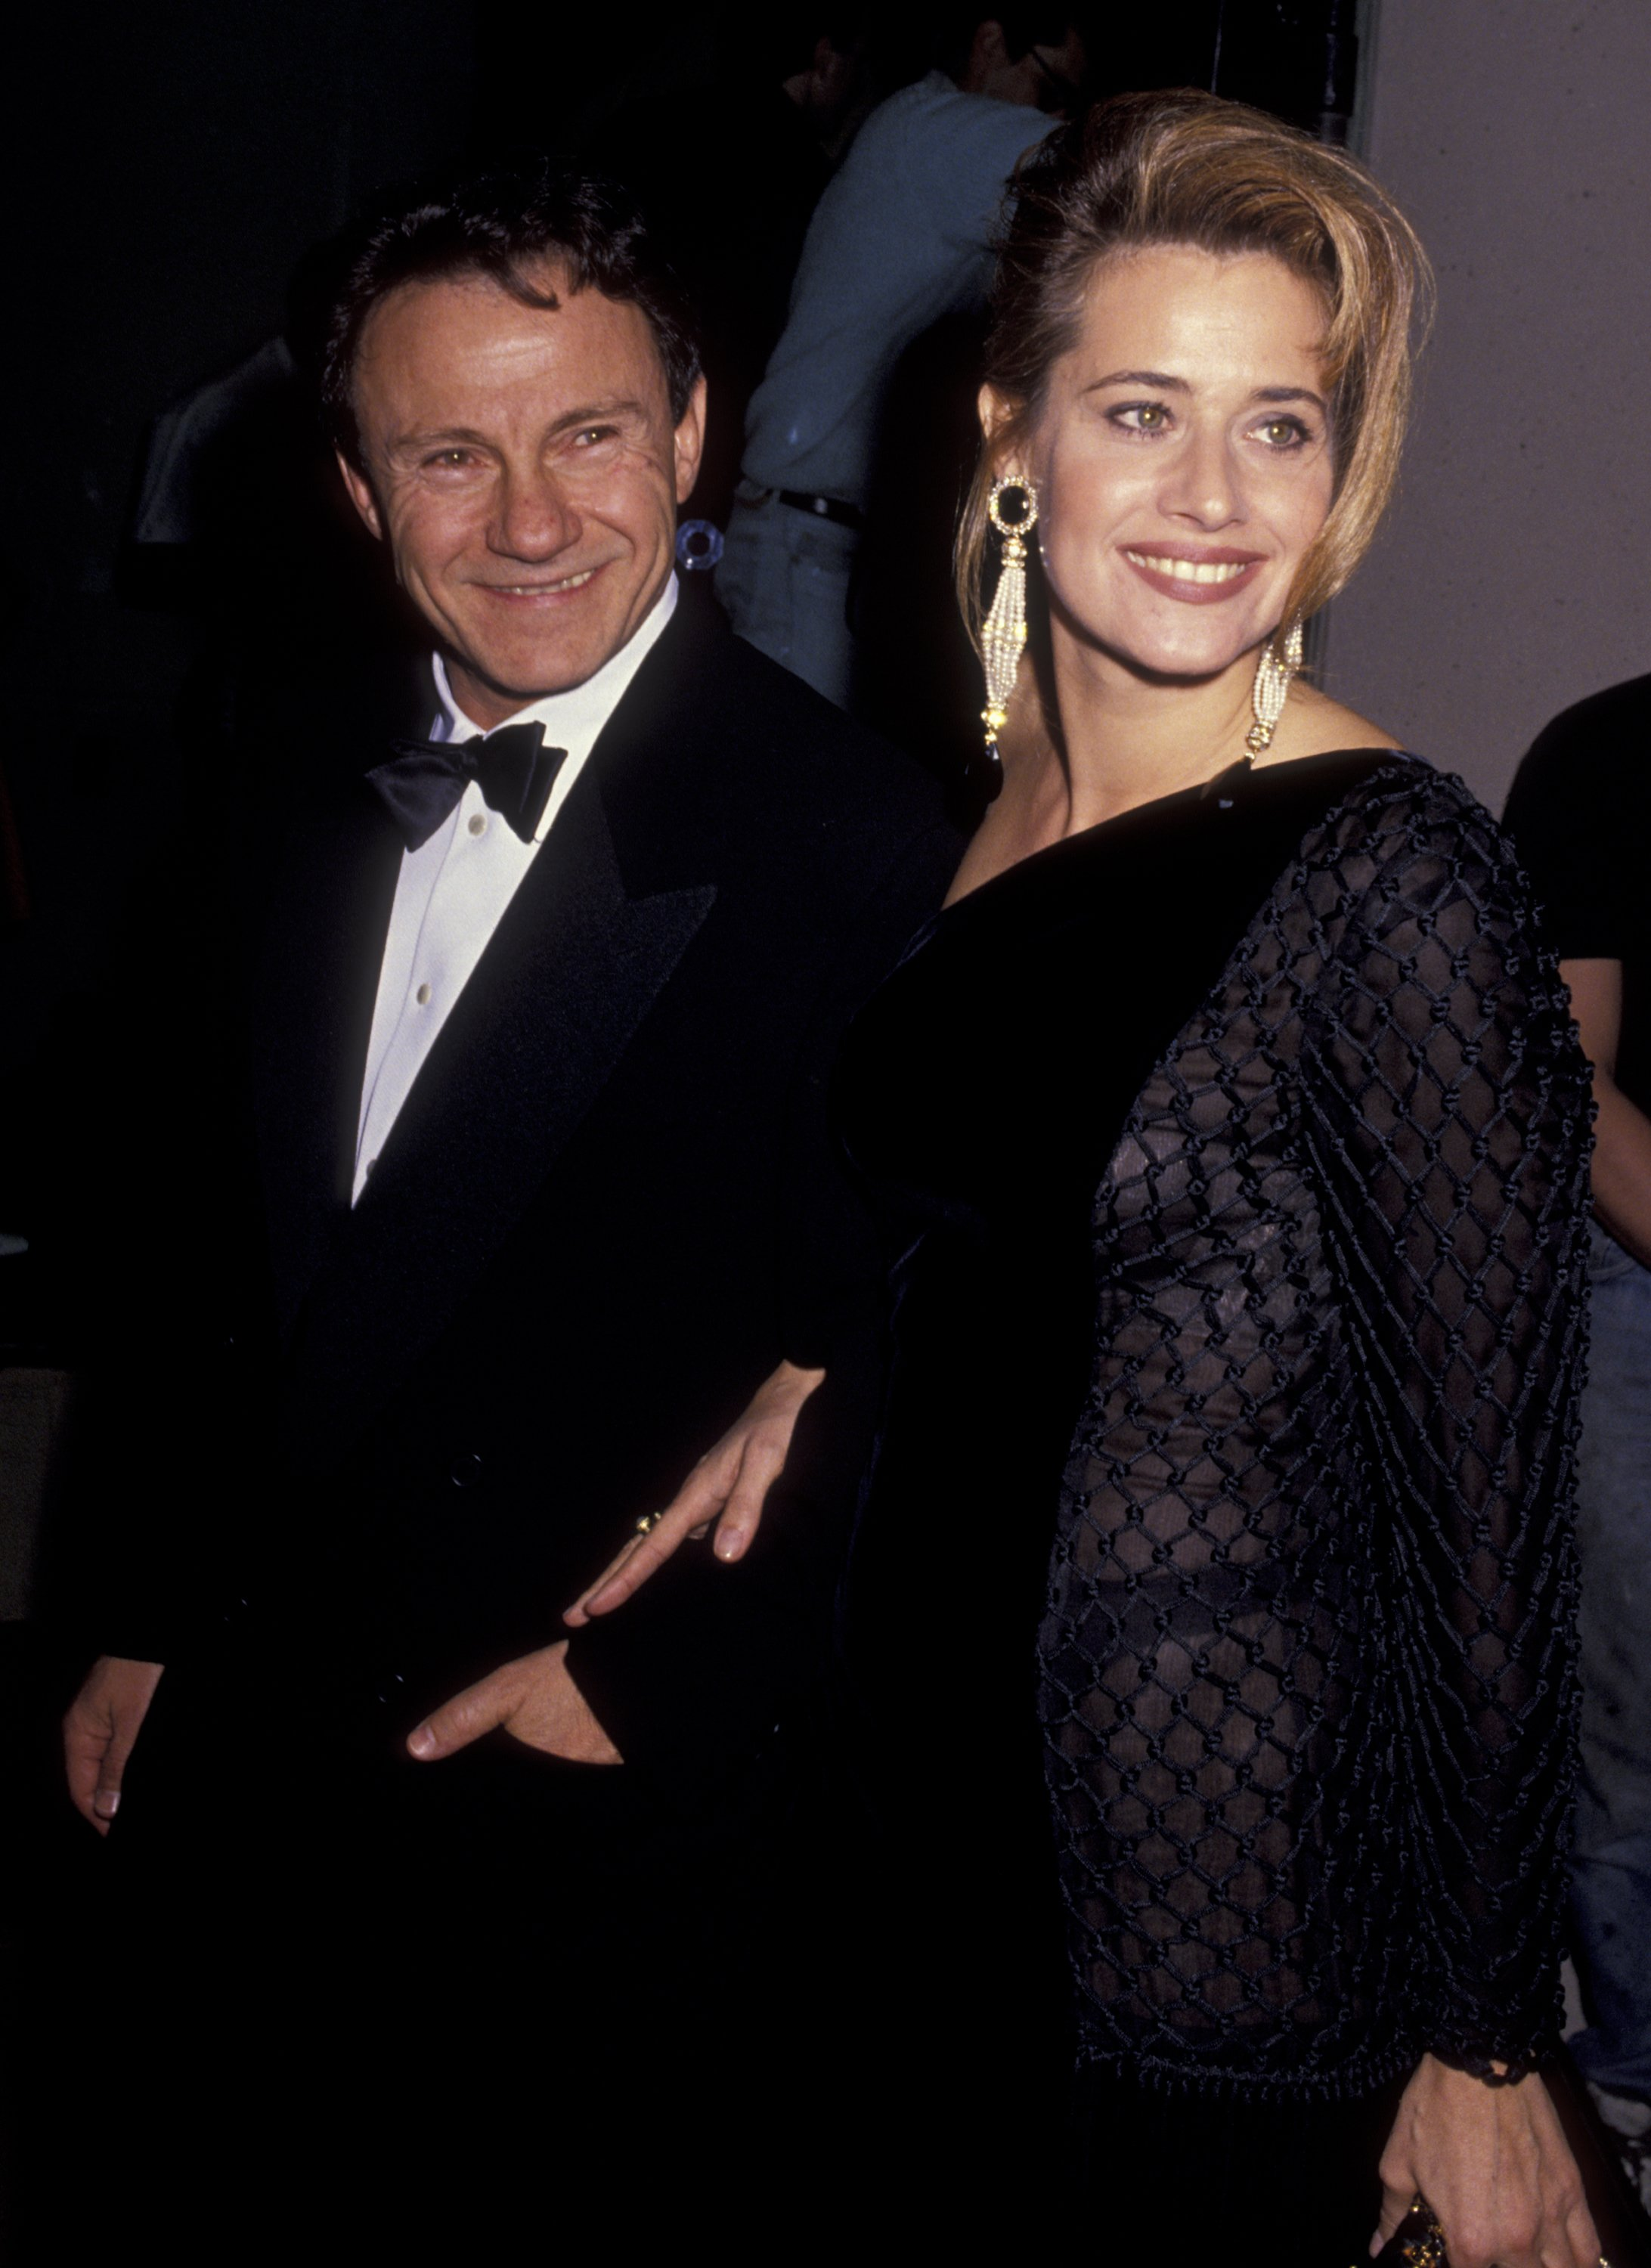 Harvey Keitel and Lorraine Bracco attend 48th Annual Golden Globe Awards on January 19, 1991 in Beverly Hills, California | Photo: Getty Images